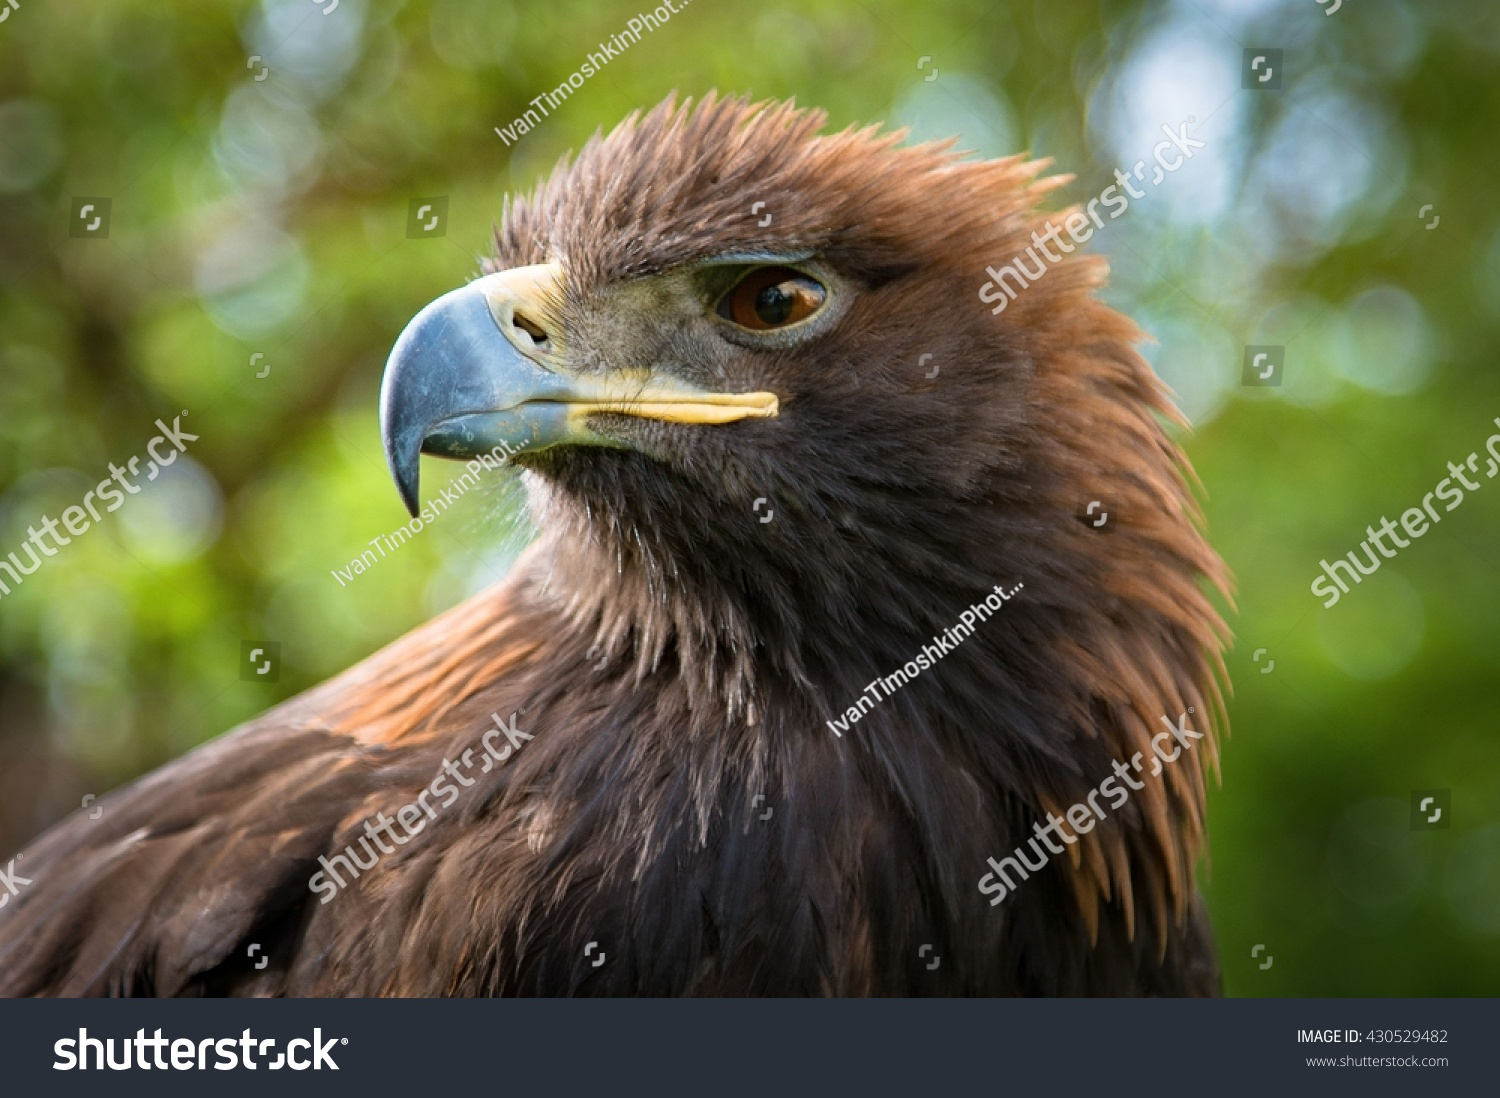 angry bird golden eagle hunter small village stock photo 430529482